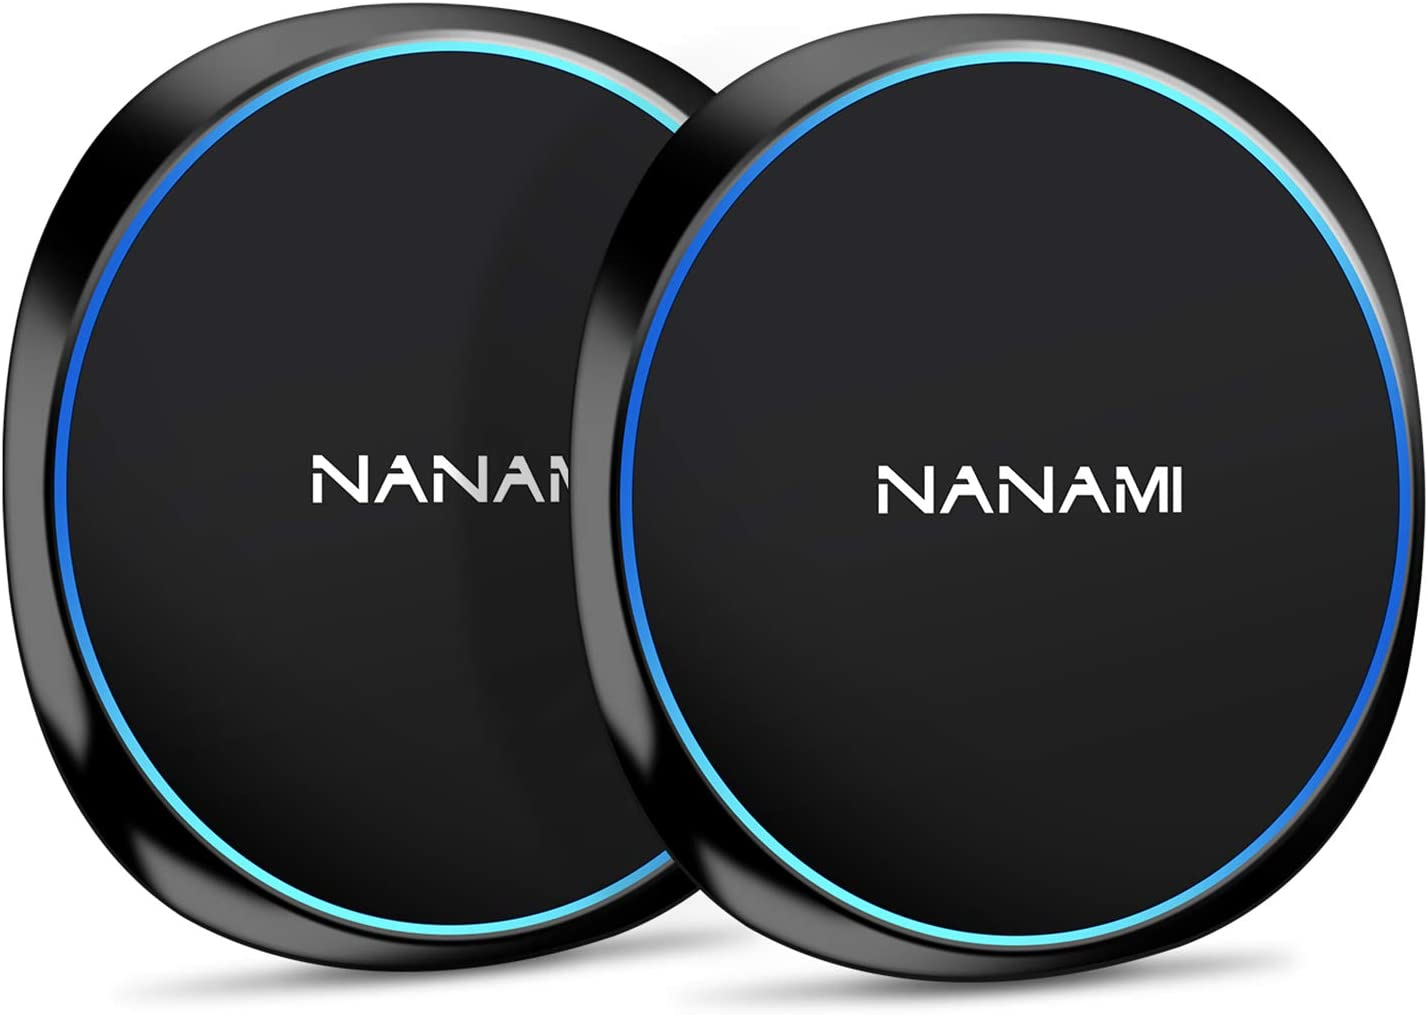 NANAMI Max 50% OFF Fast Luxury goods Wireless Charger Qi-Certified 10W Charging